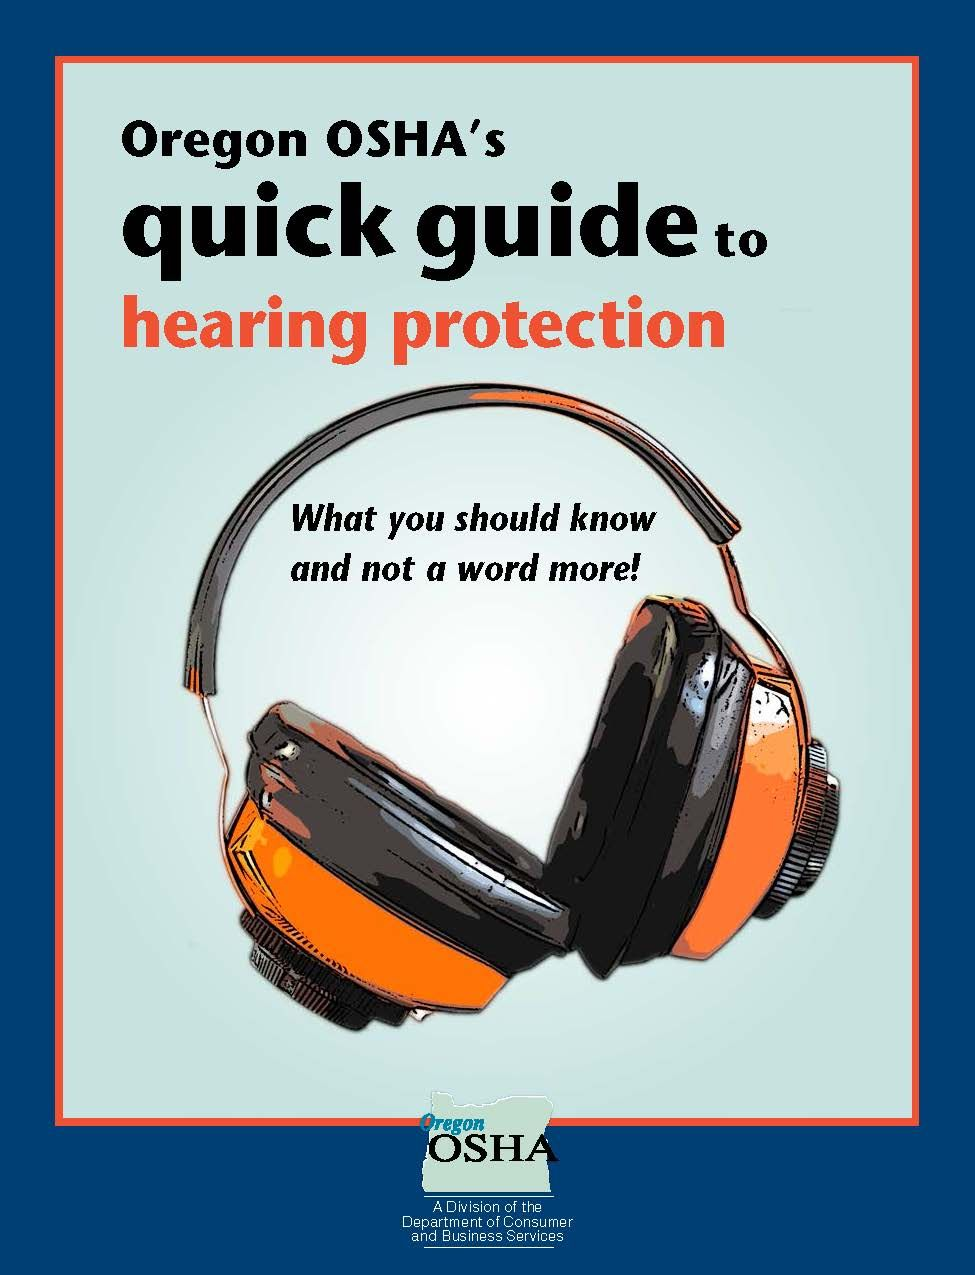 Oregon OSHA's quick guide to hearing protection what you